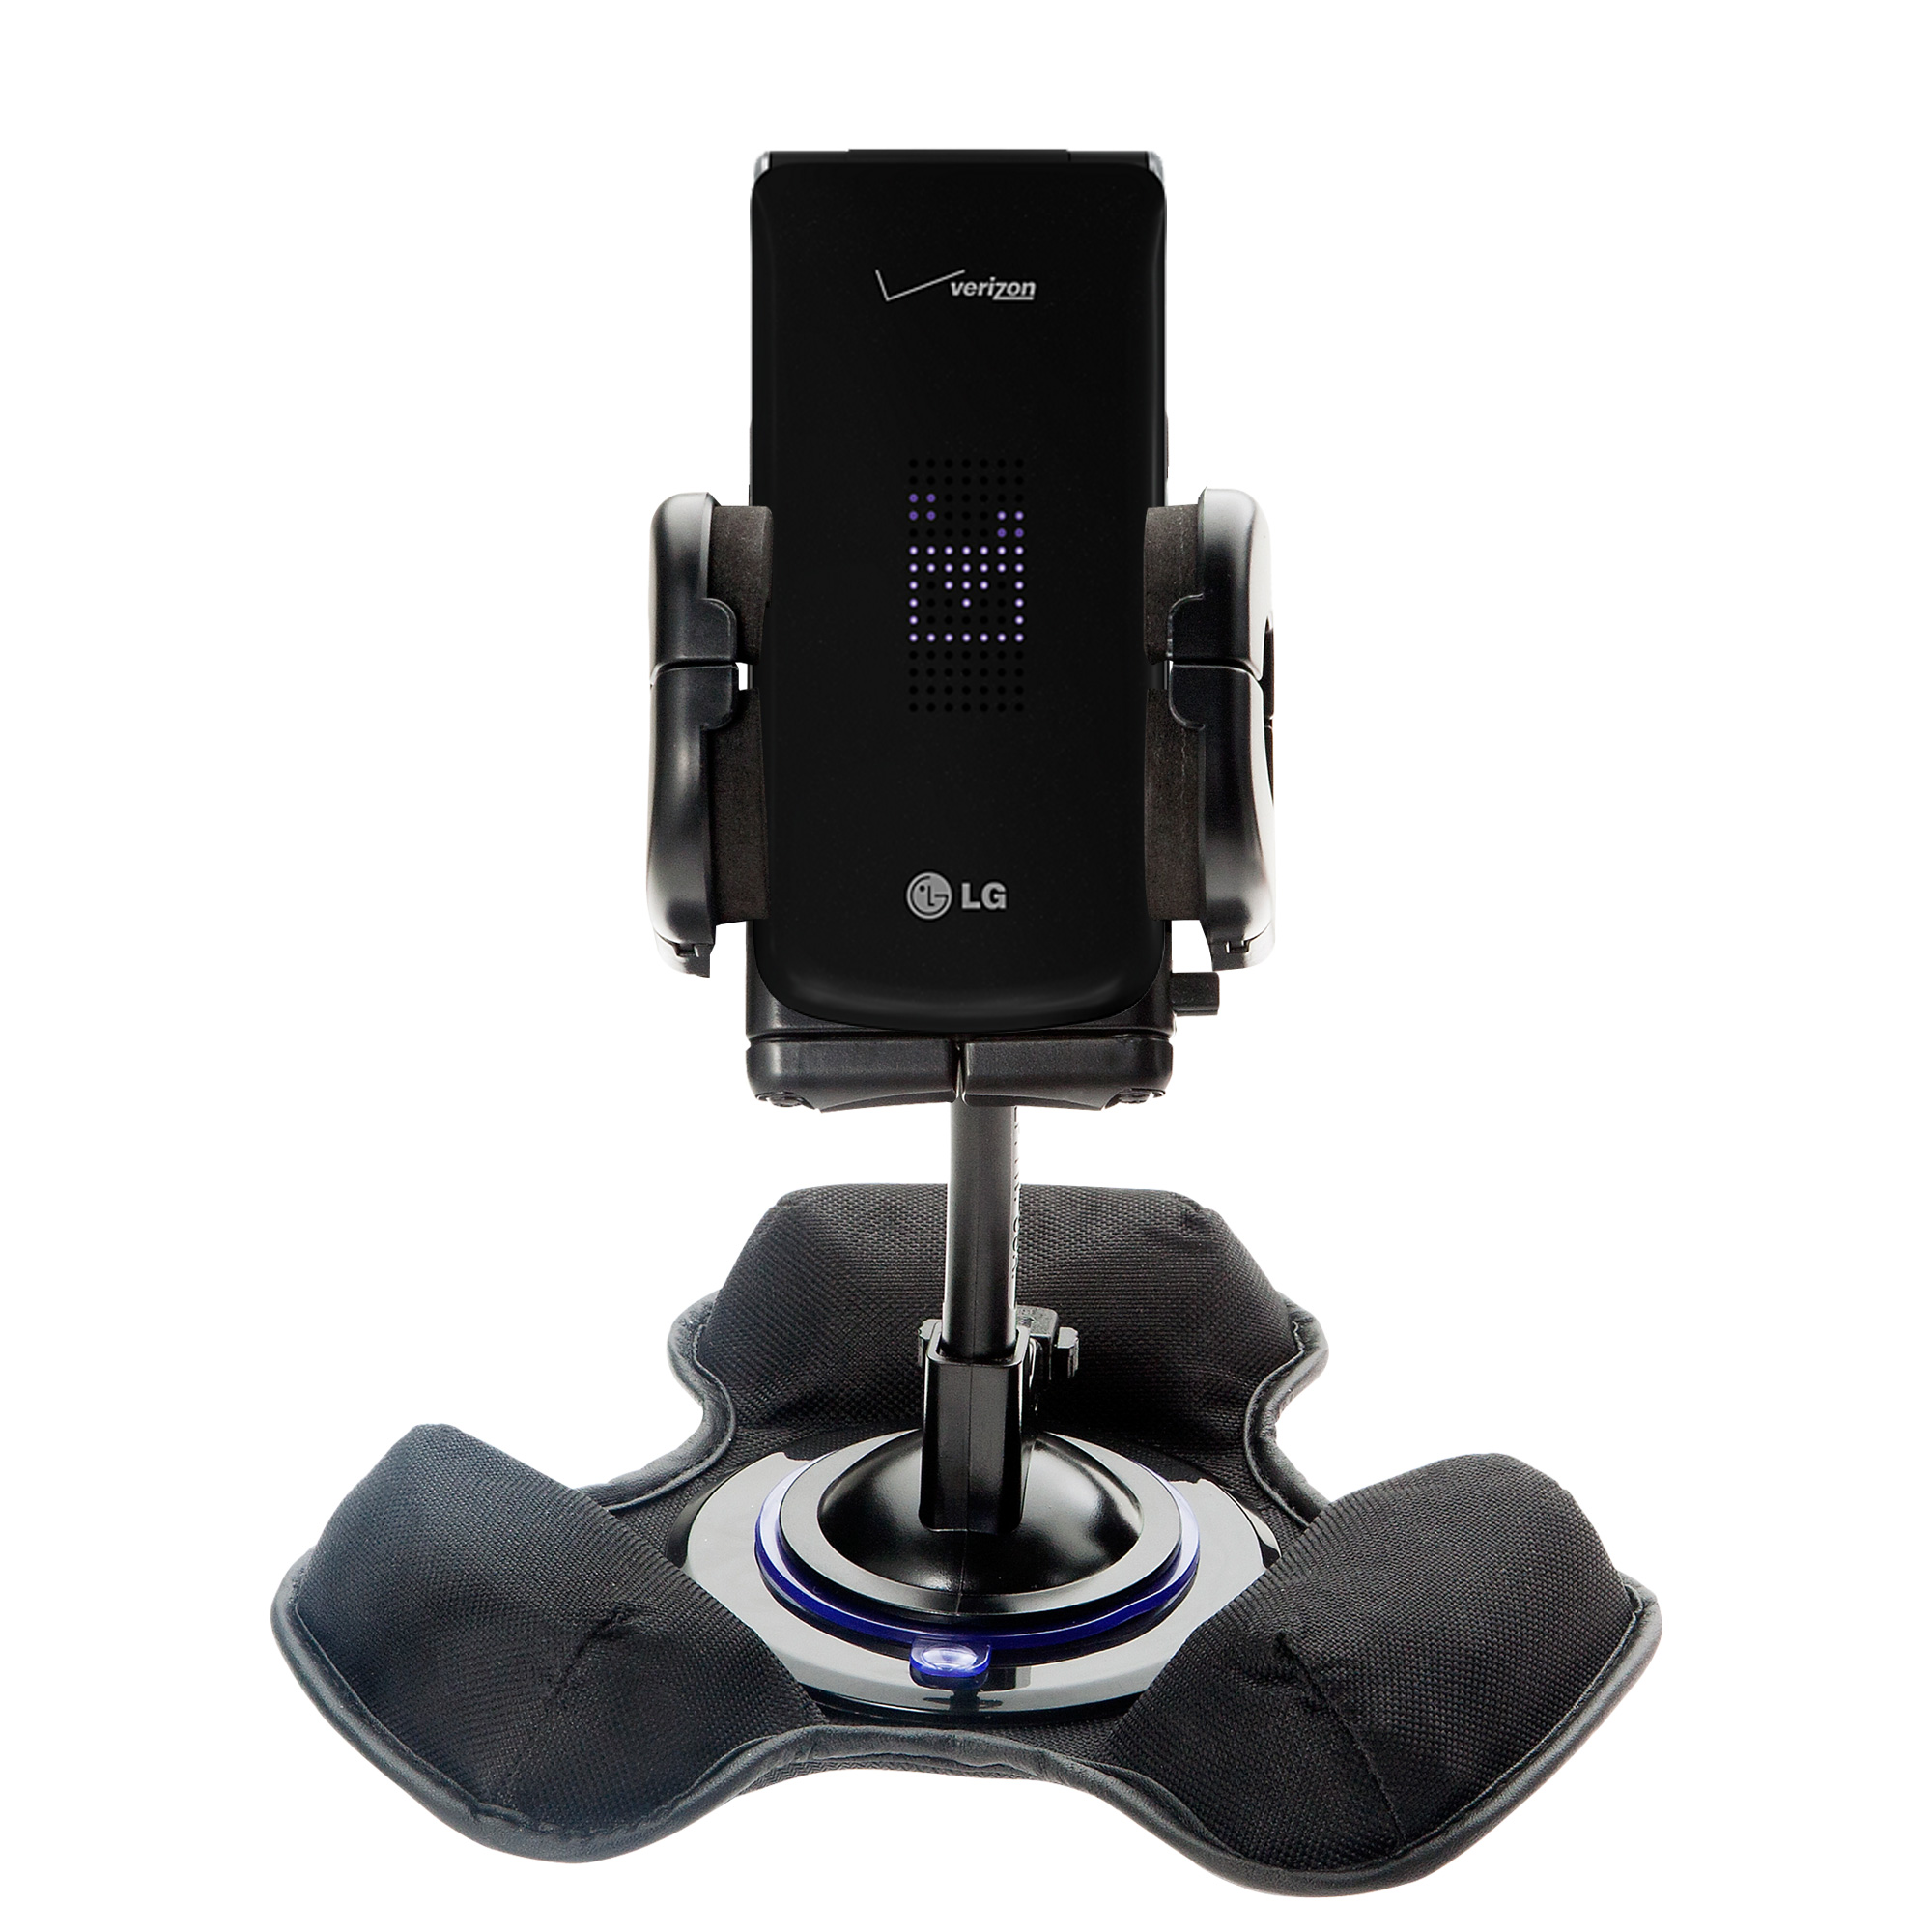 Dash and Windshield Holder compatible with the LG Exalt VN360